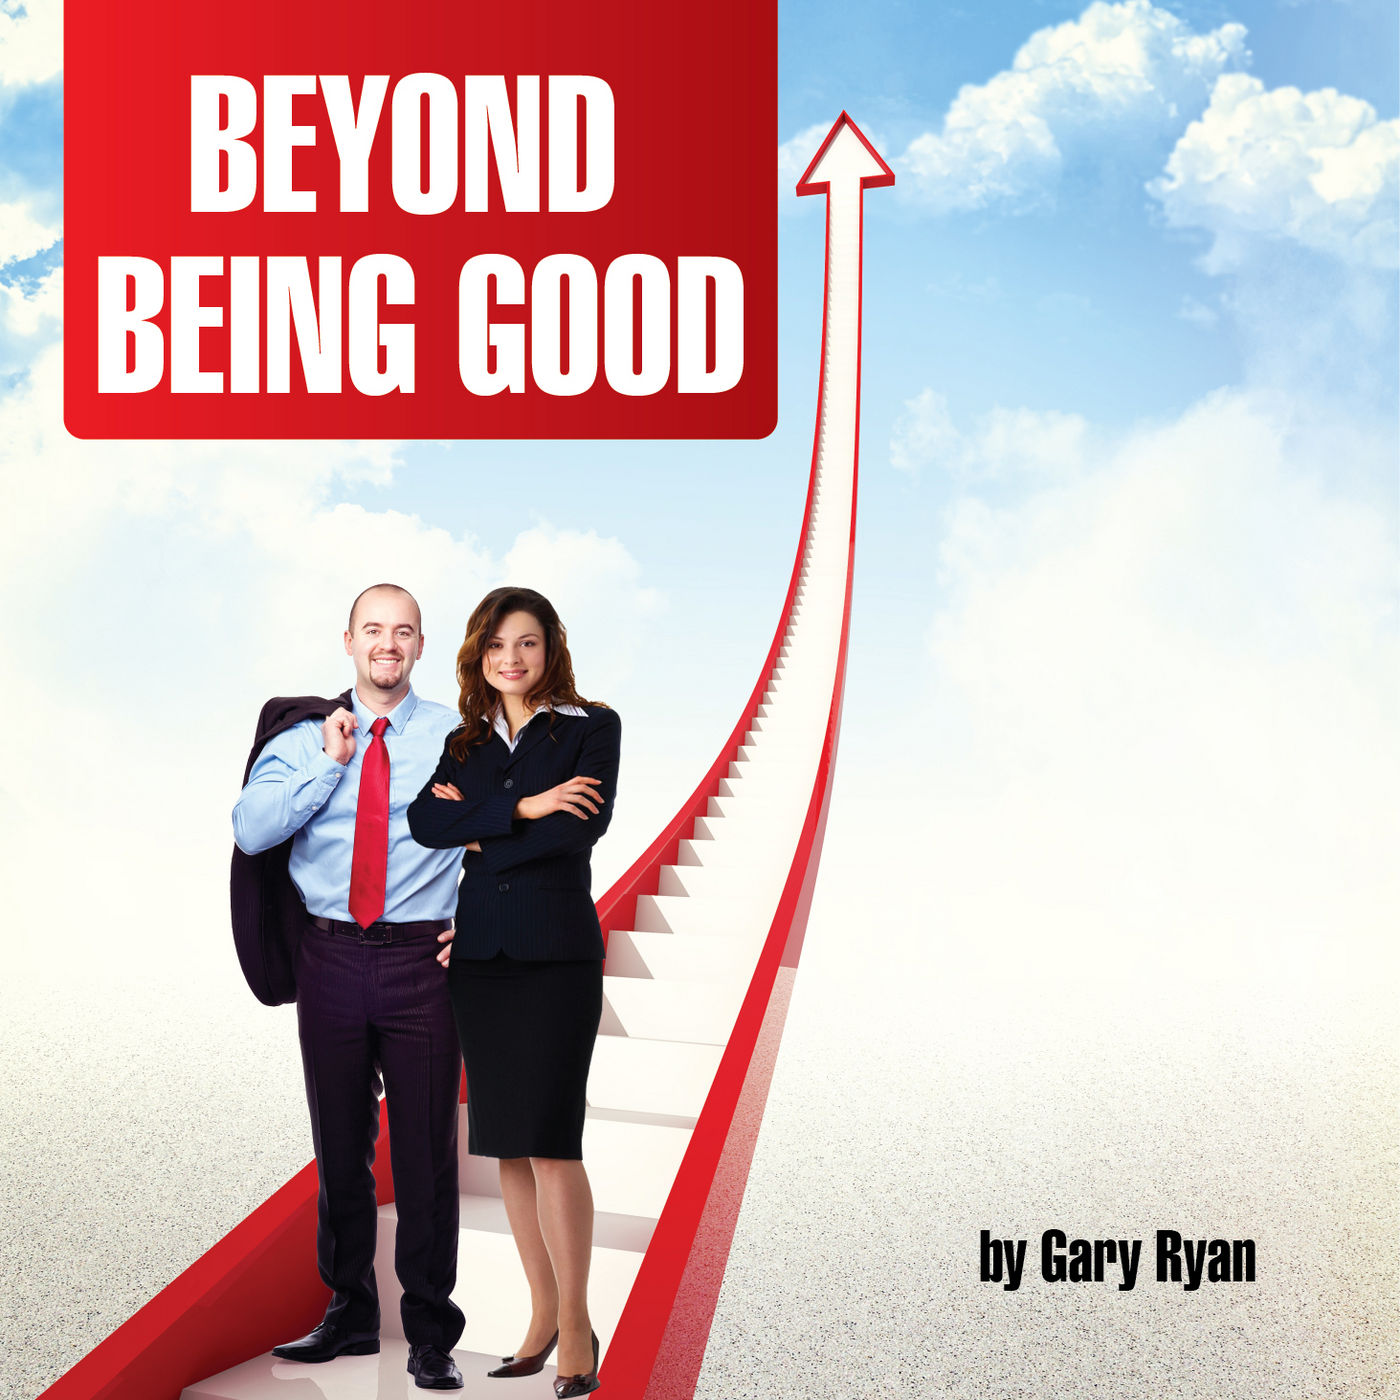 Gary Ryan Moving Beyond Being Good®